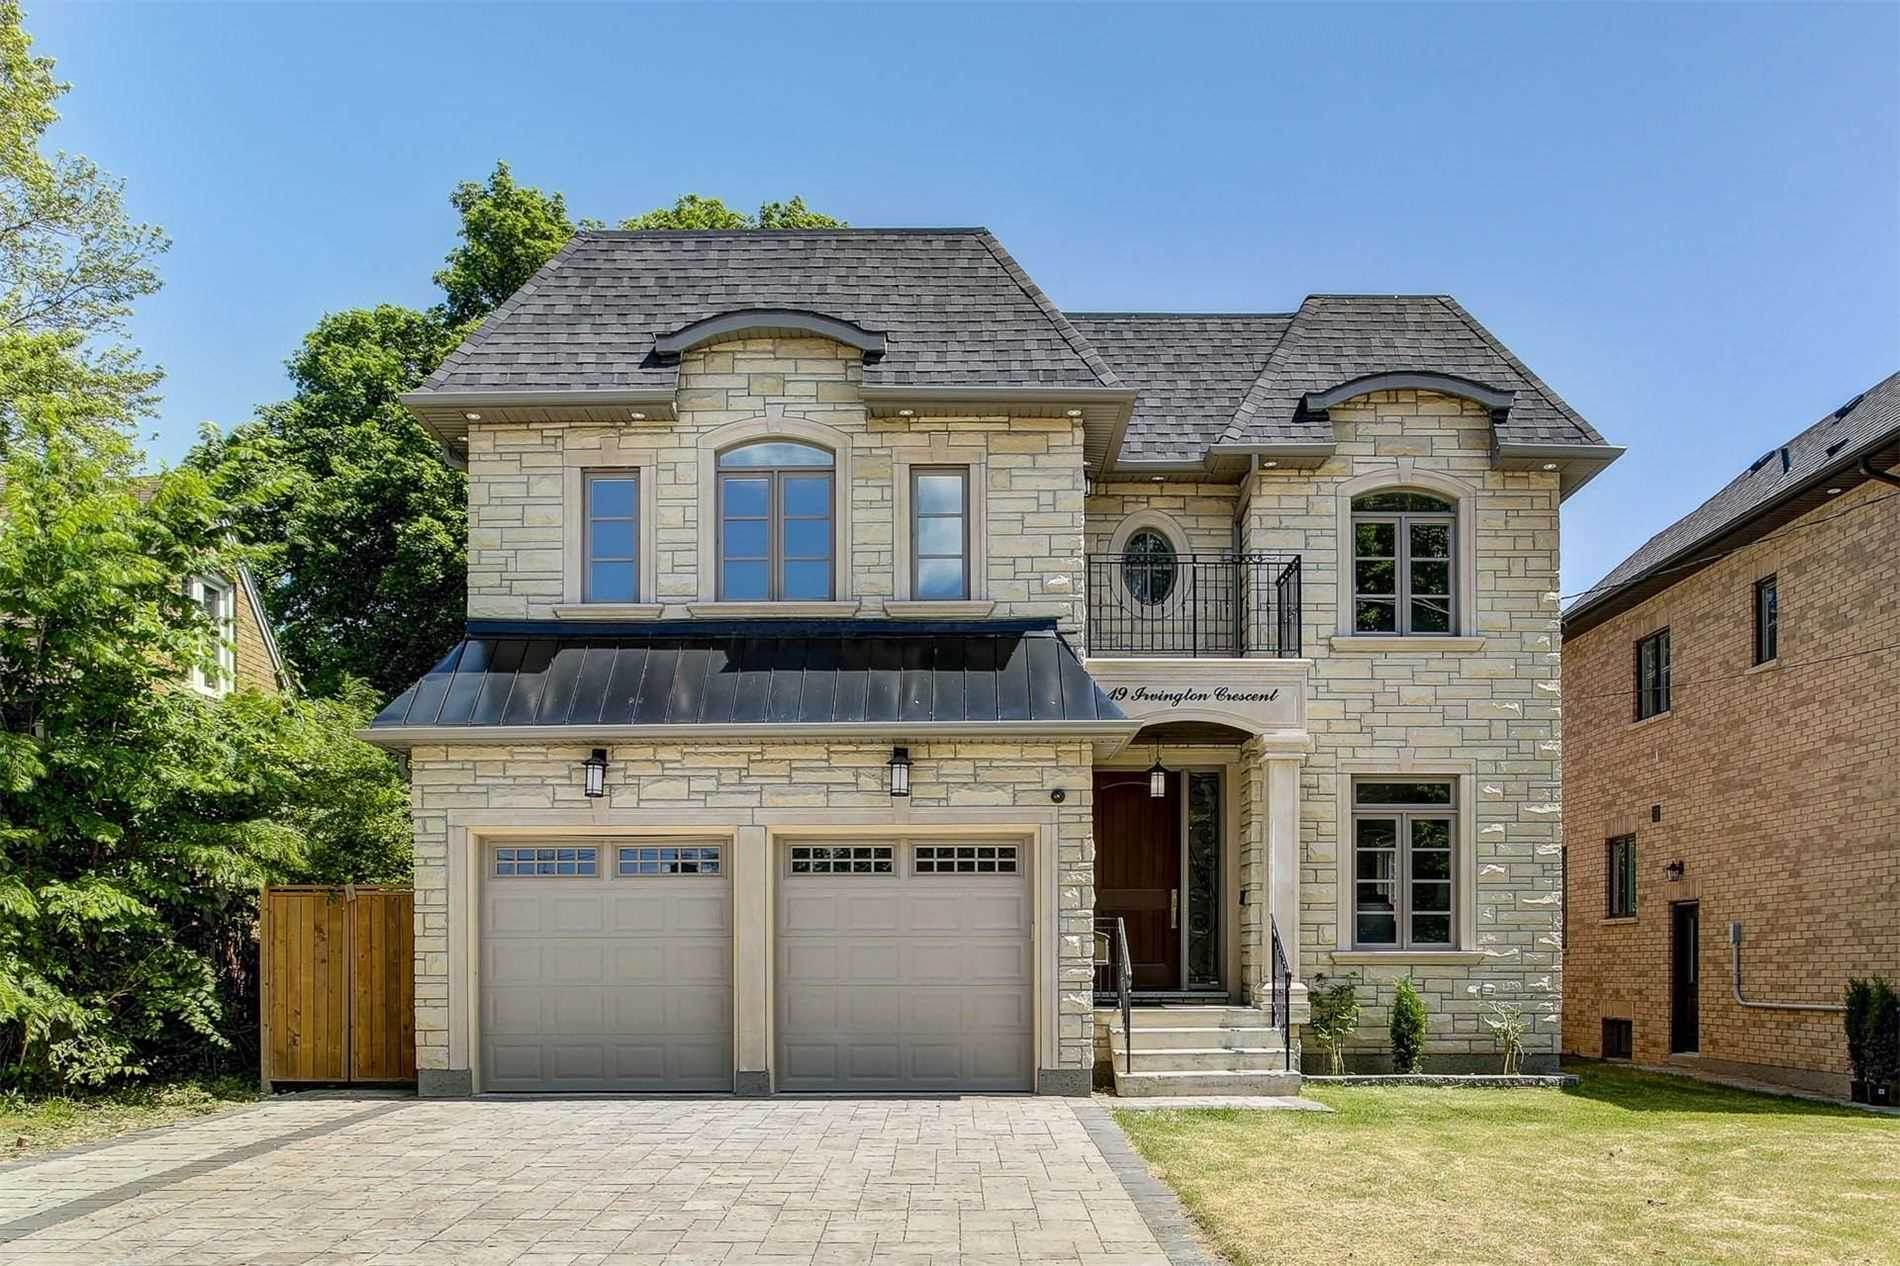 For Sale: 19 Irvington Crescent, Toronto, ON | 4 Bed, 5 Bath House for $2588000.00. See 20 photos!